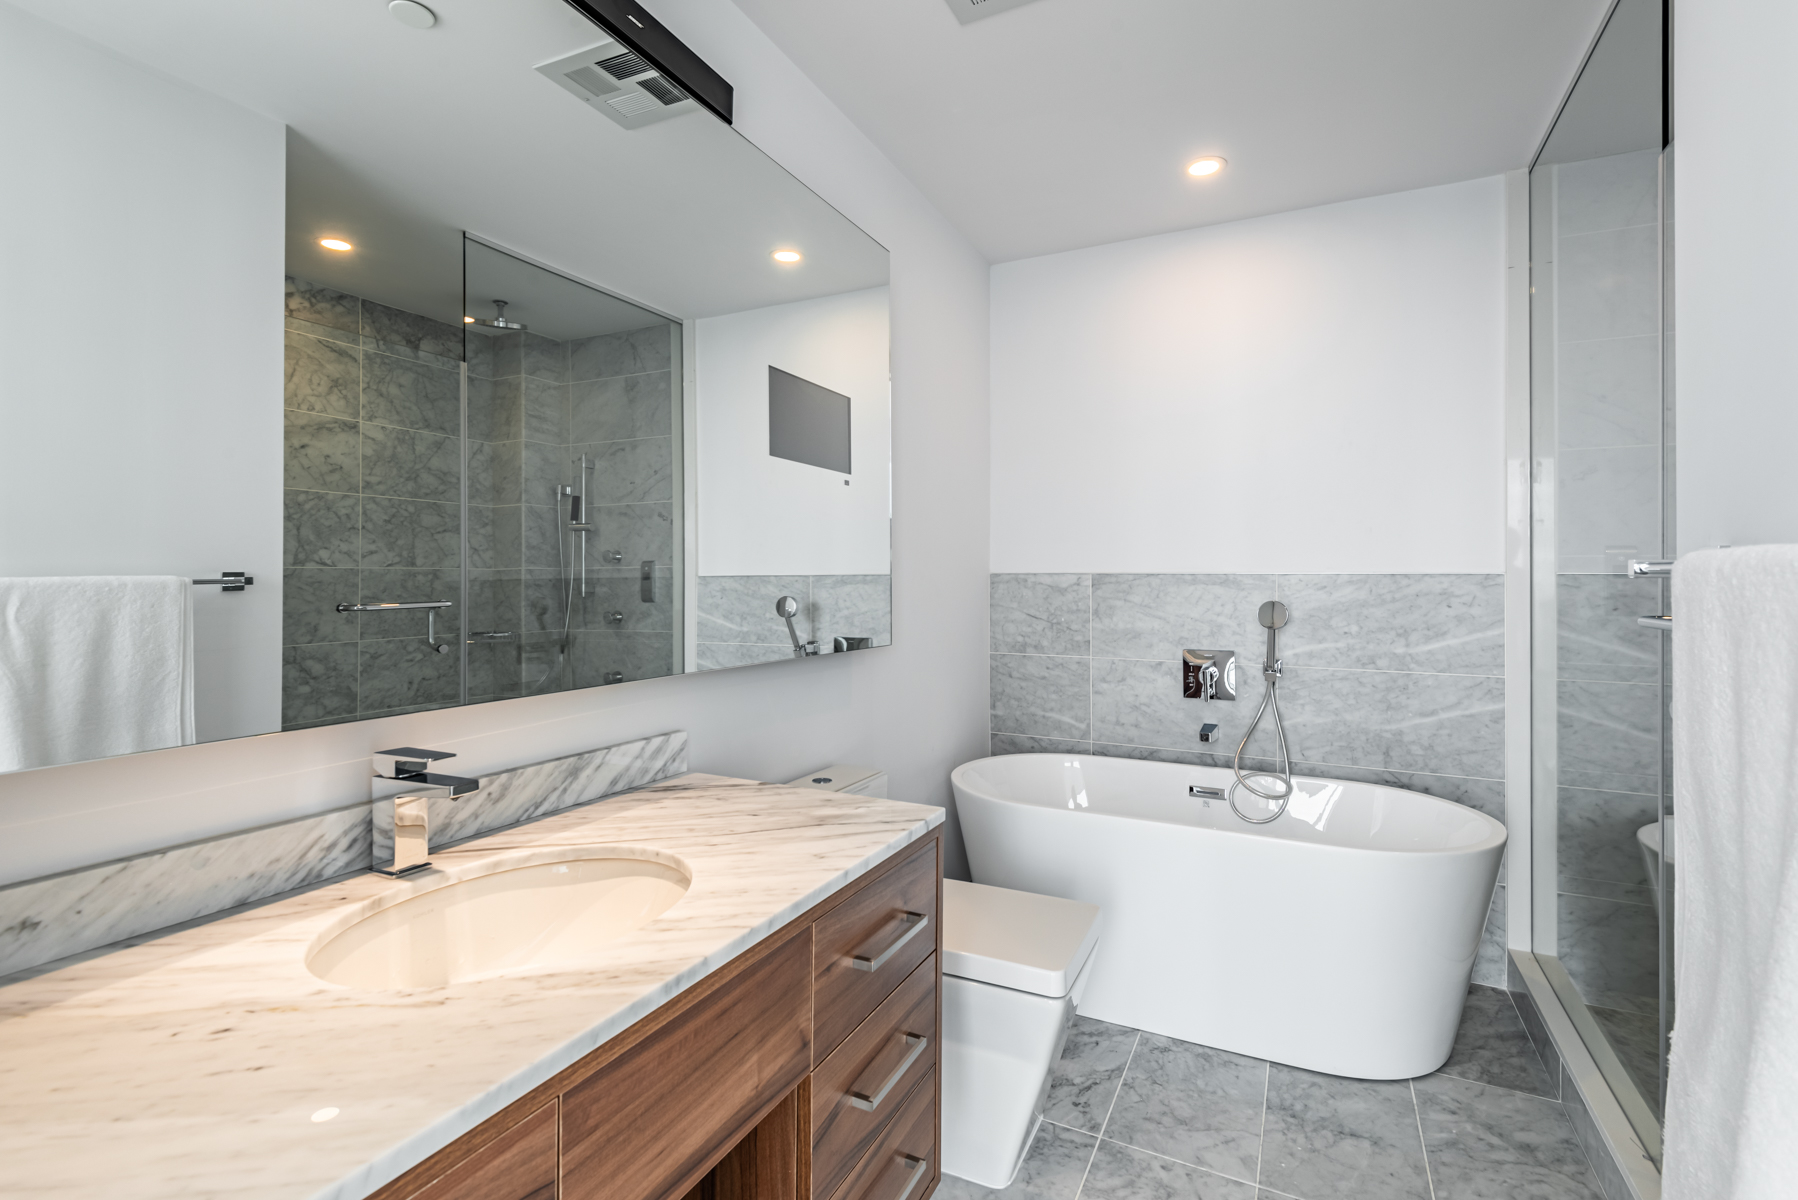 488 University Ave #3102 master bath with marble tiles, granite counters, long mirror and big tub.